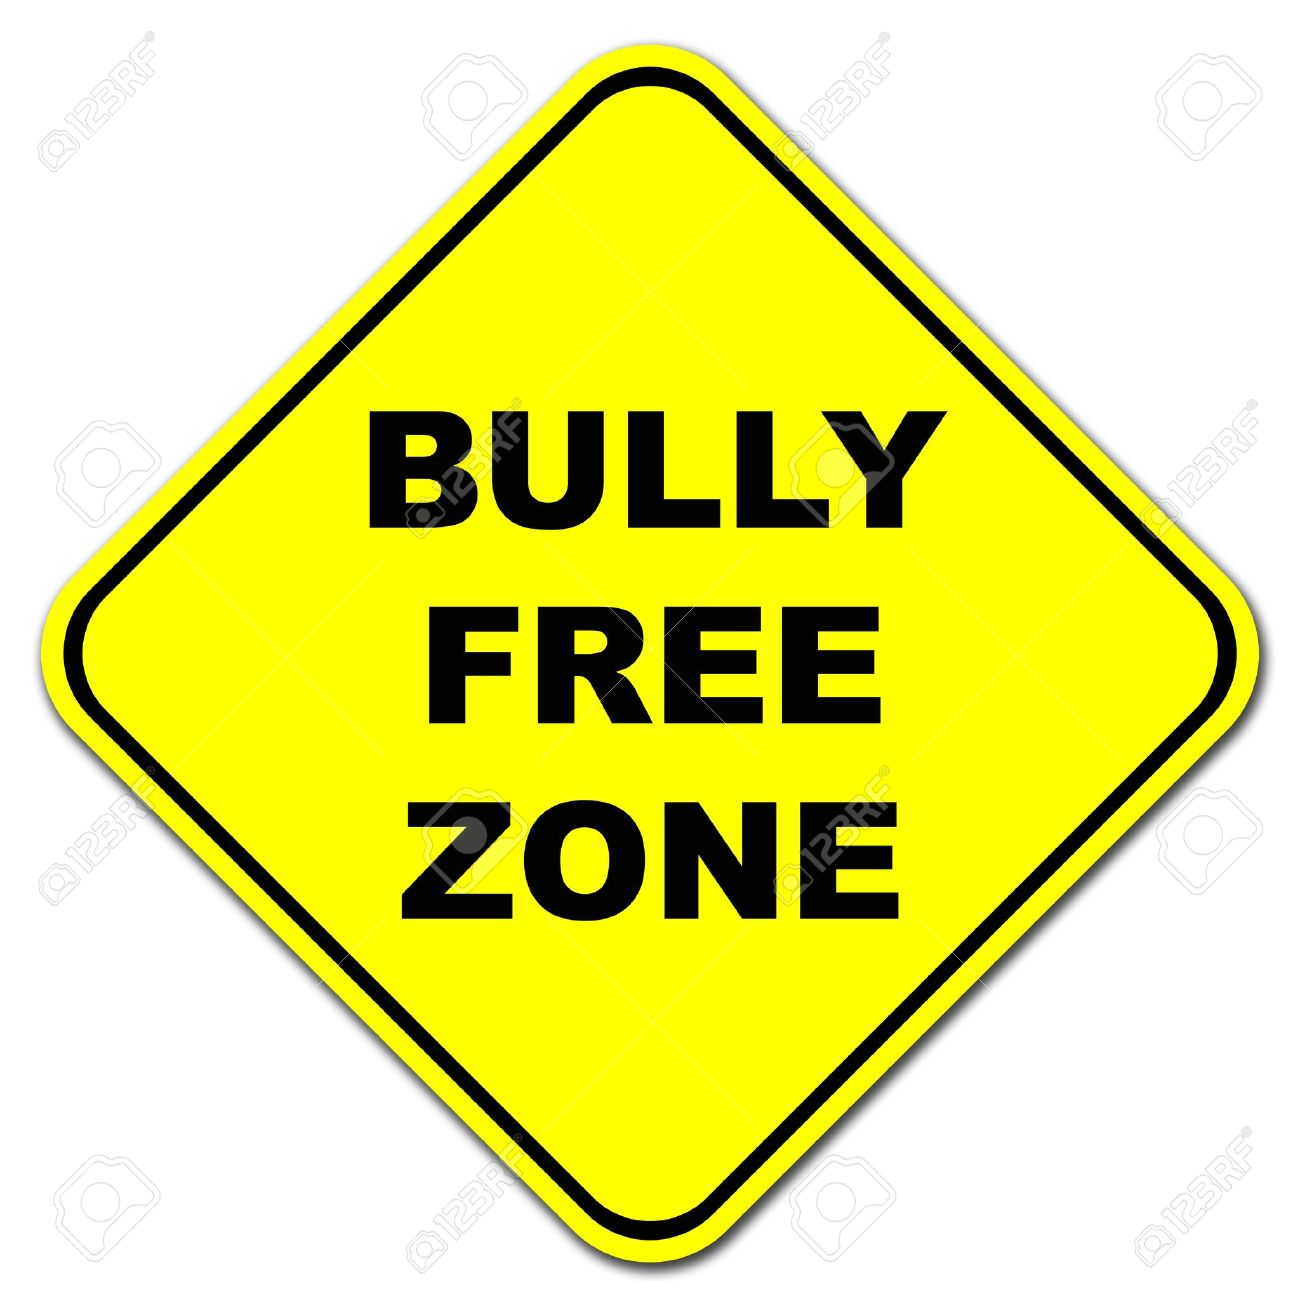 Yellow Bully Free Zone Road Sign Stock Photo, Picture And Royalty.